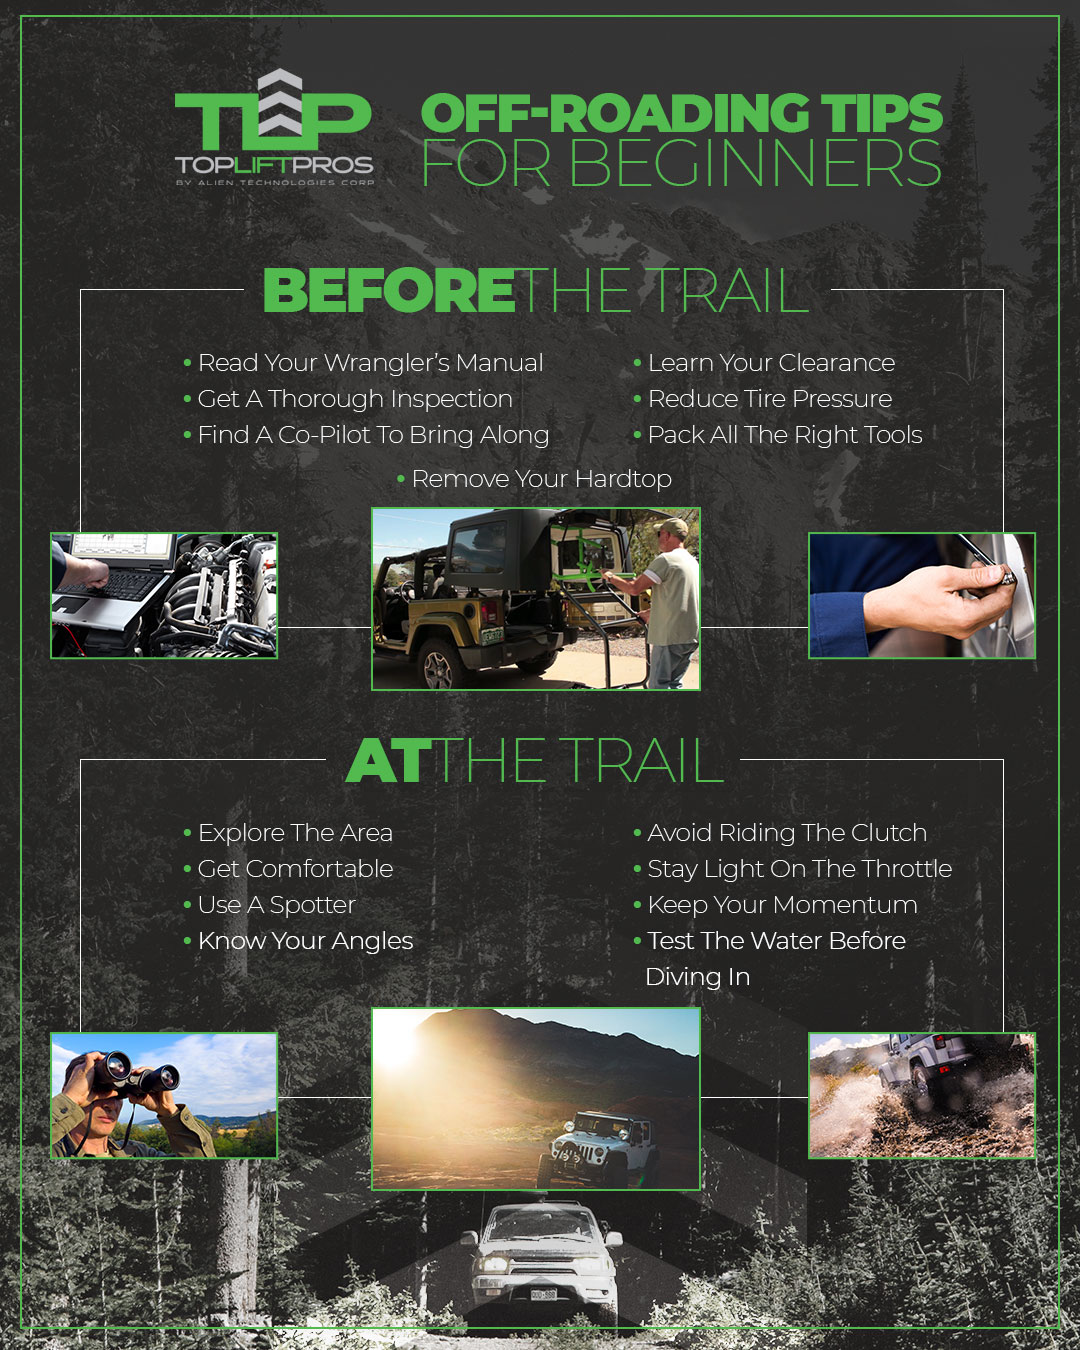 Off Roading tips from TopLift Pros